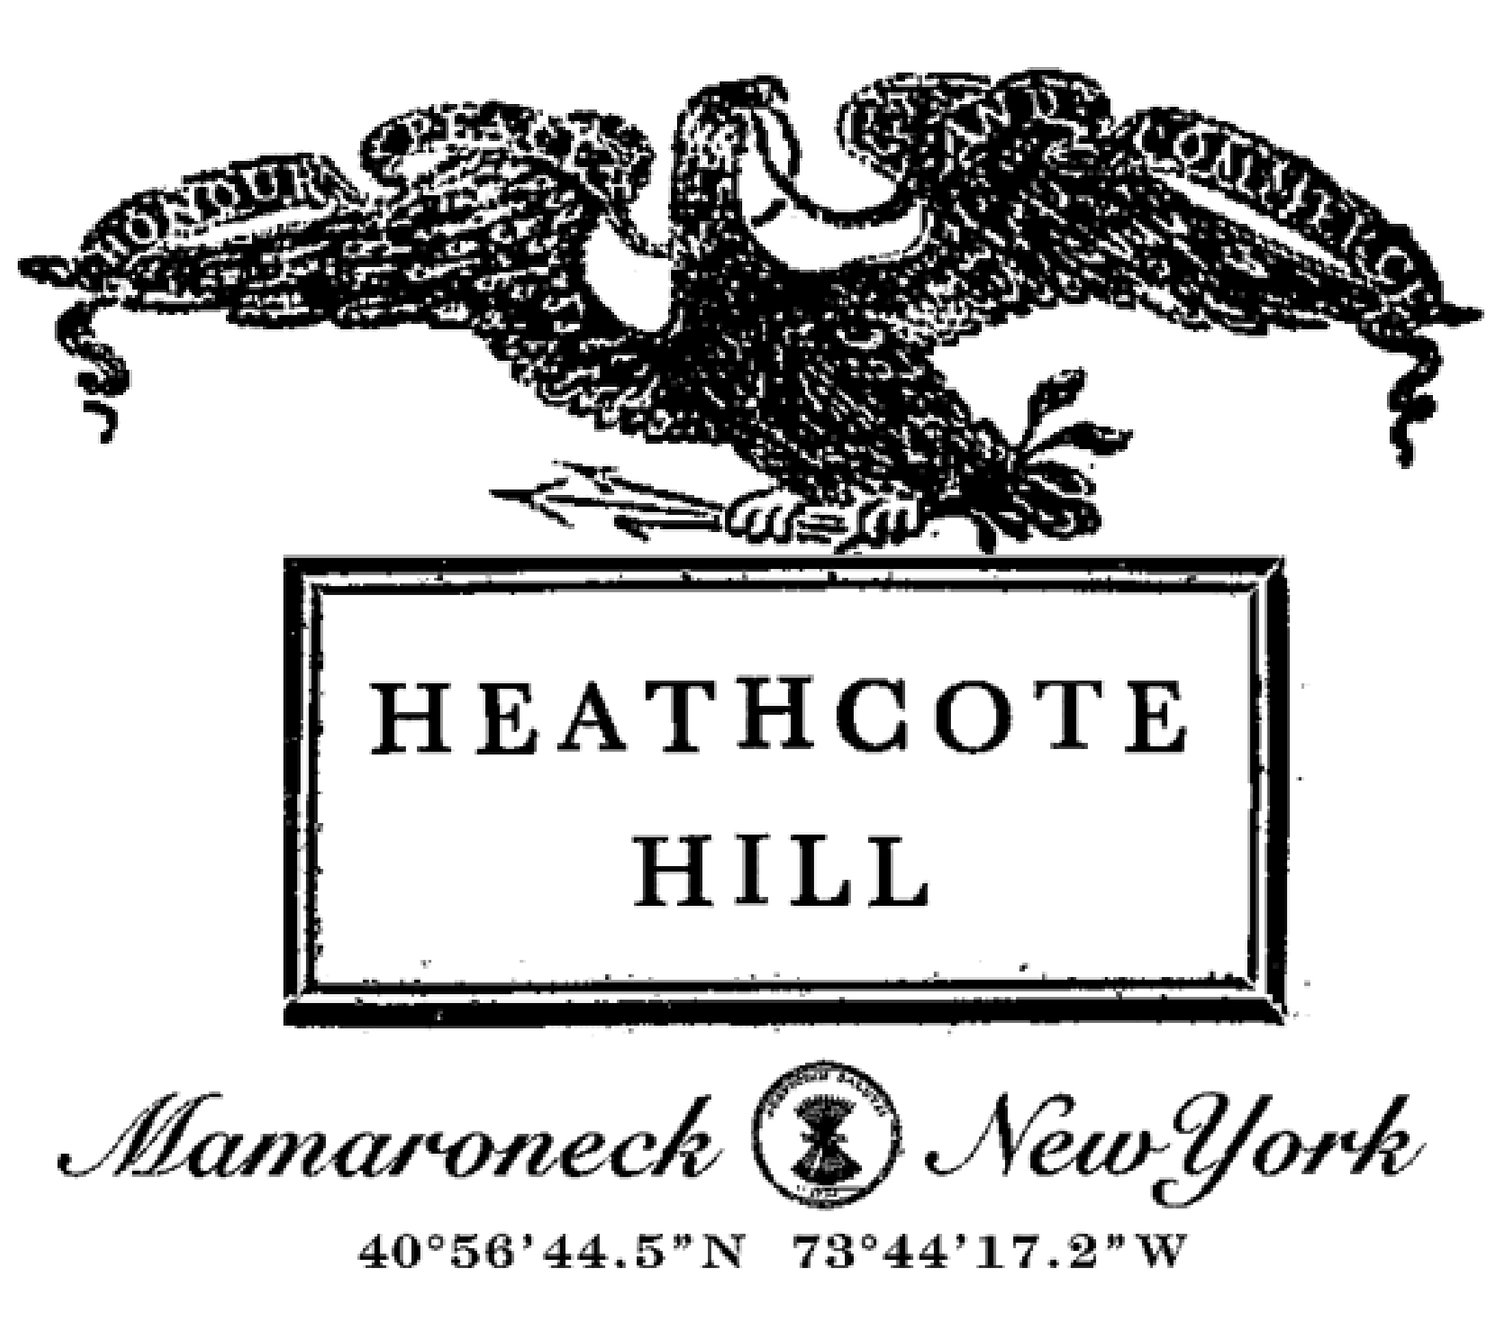 Heathcote Hill